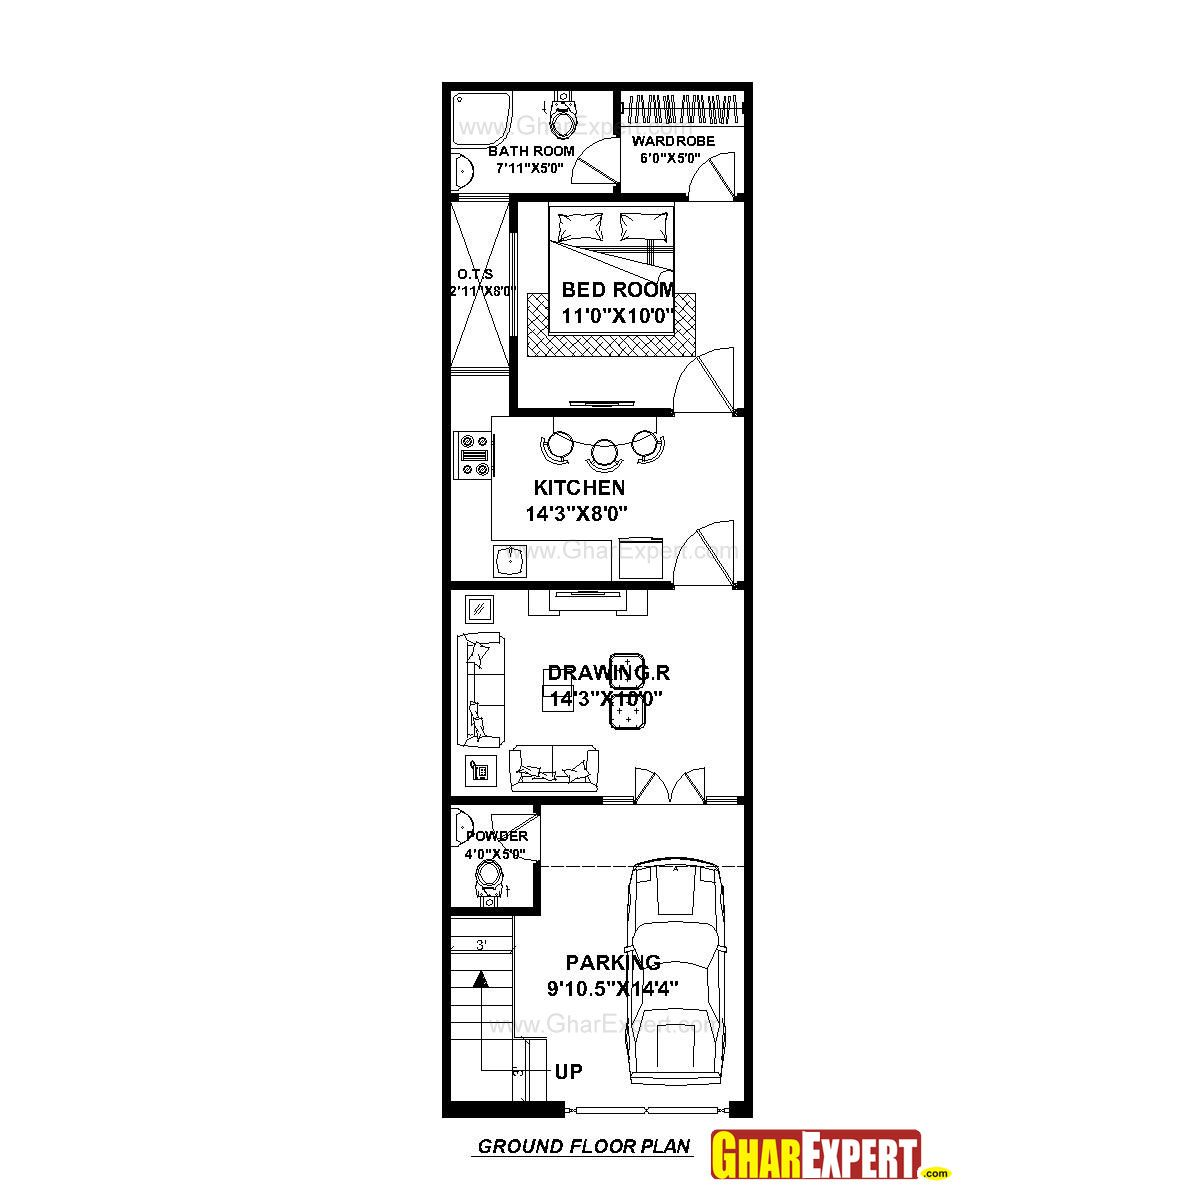 hight resolution of house plan for 15 feet by 50 feet plot plot size 83 square yards gharexpert com